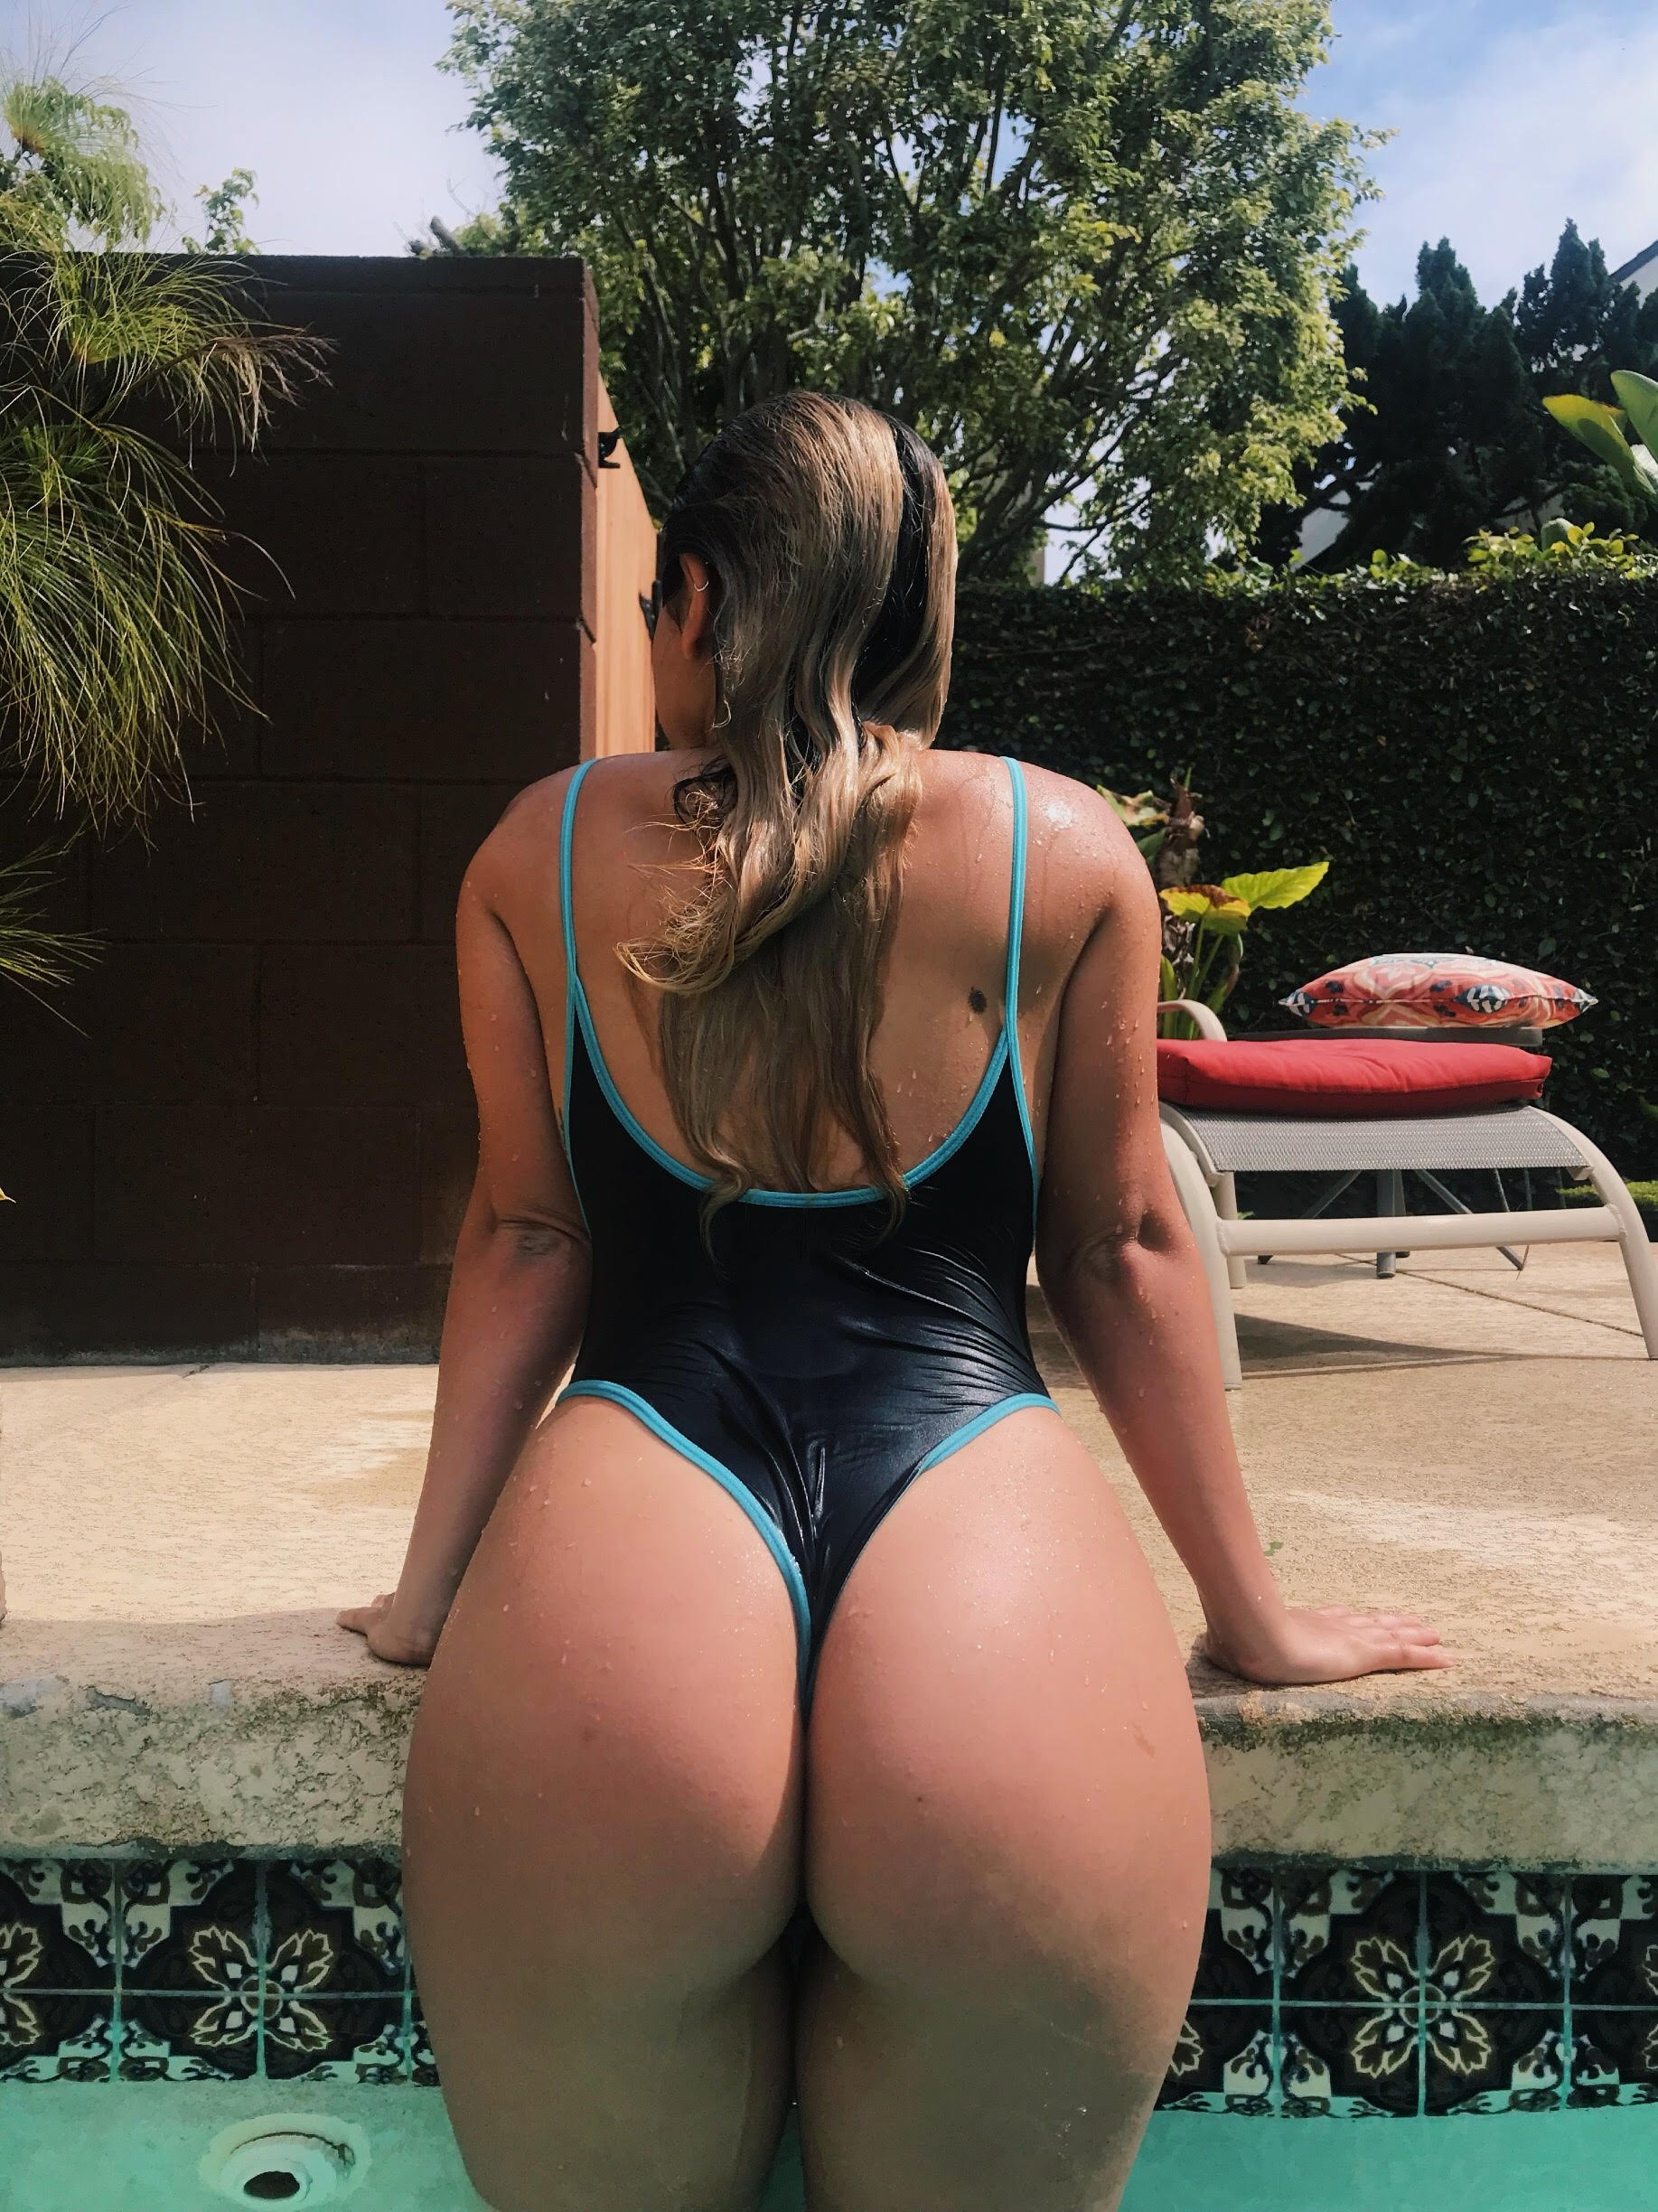 Girl after growing her glutes